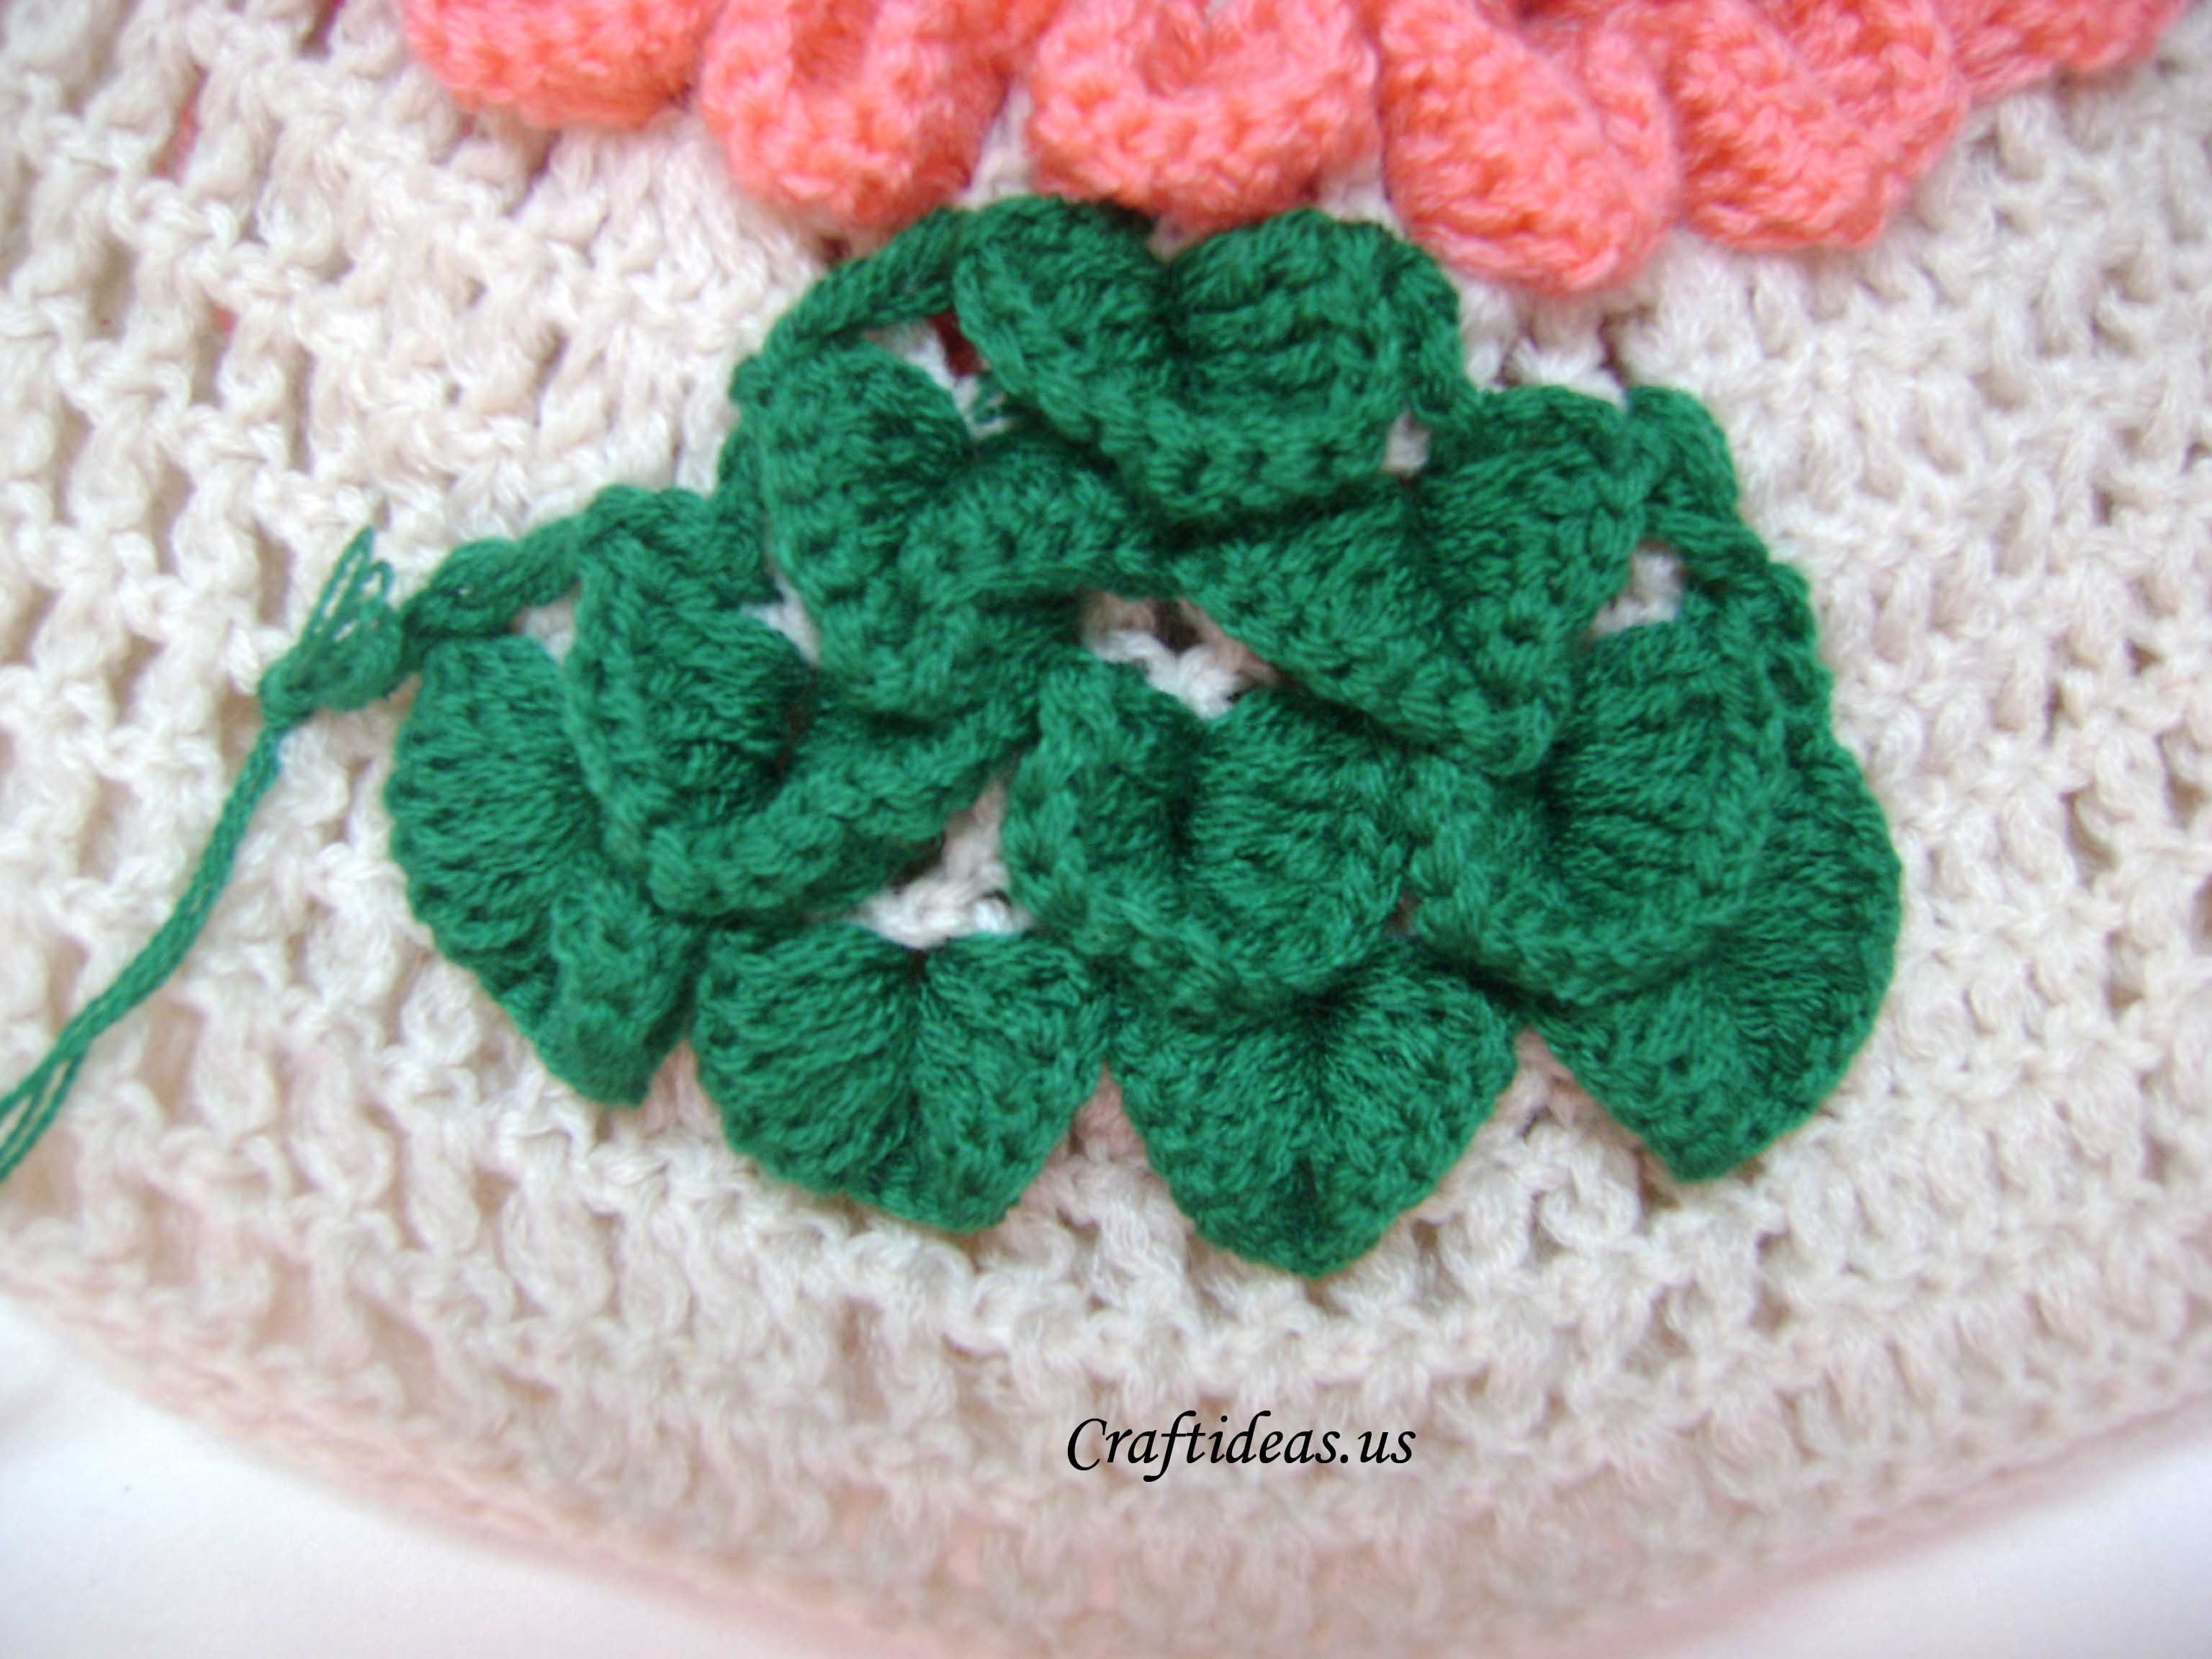 Crocheting Ideas : Christmas Craft Ideas Crocheted Beauty Snowflake Tutorial Make ...